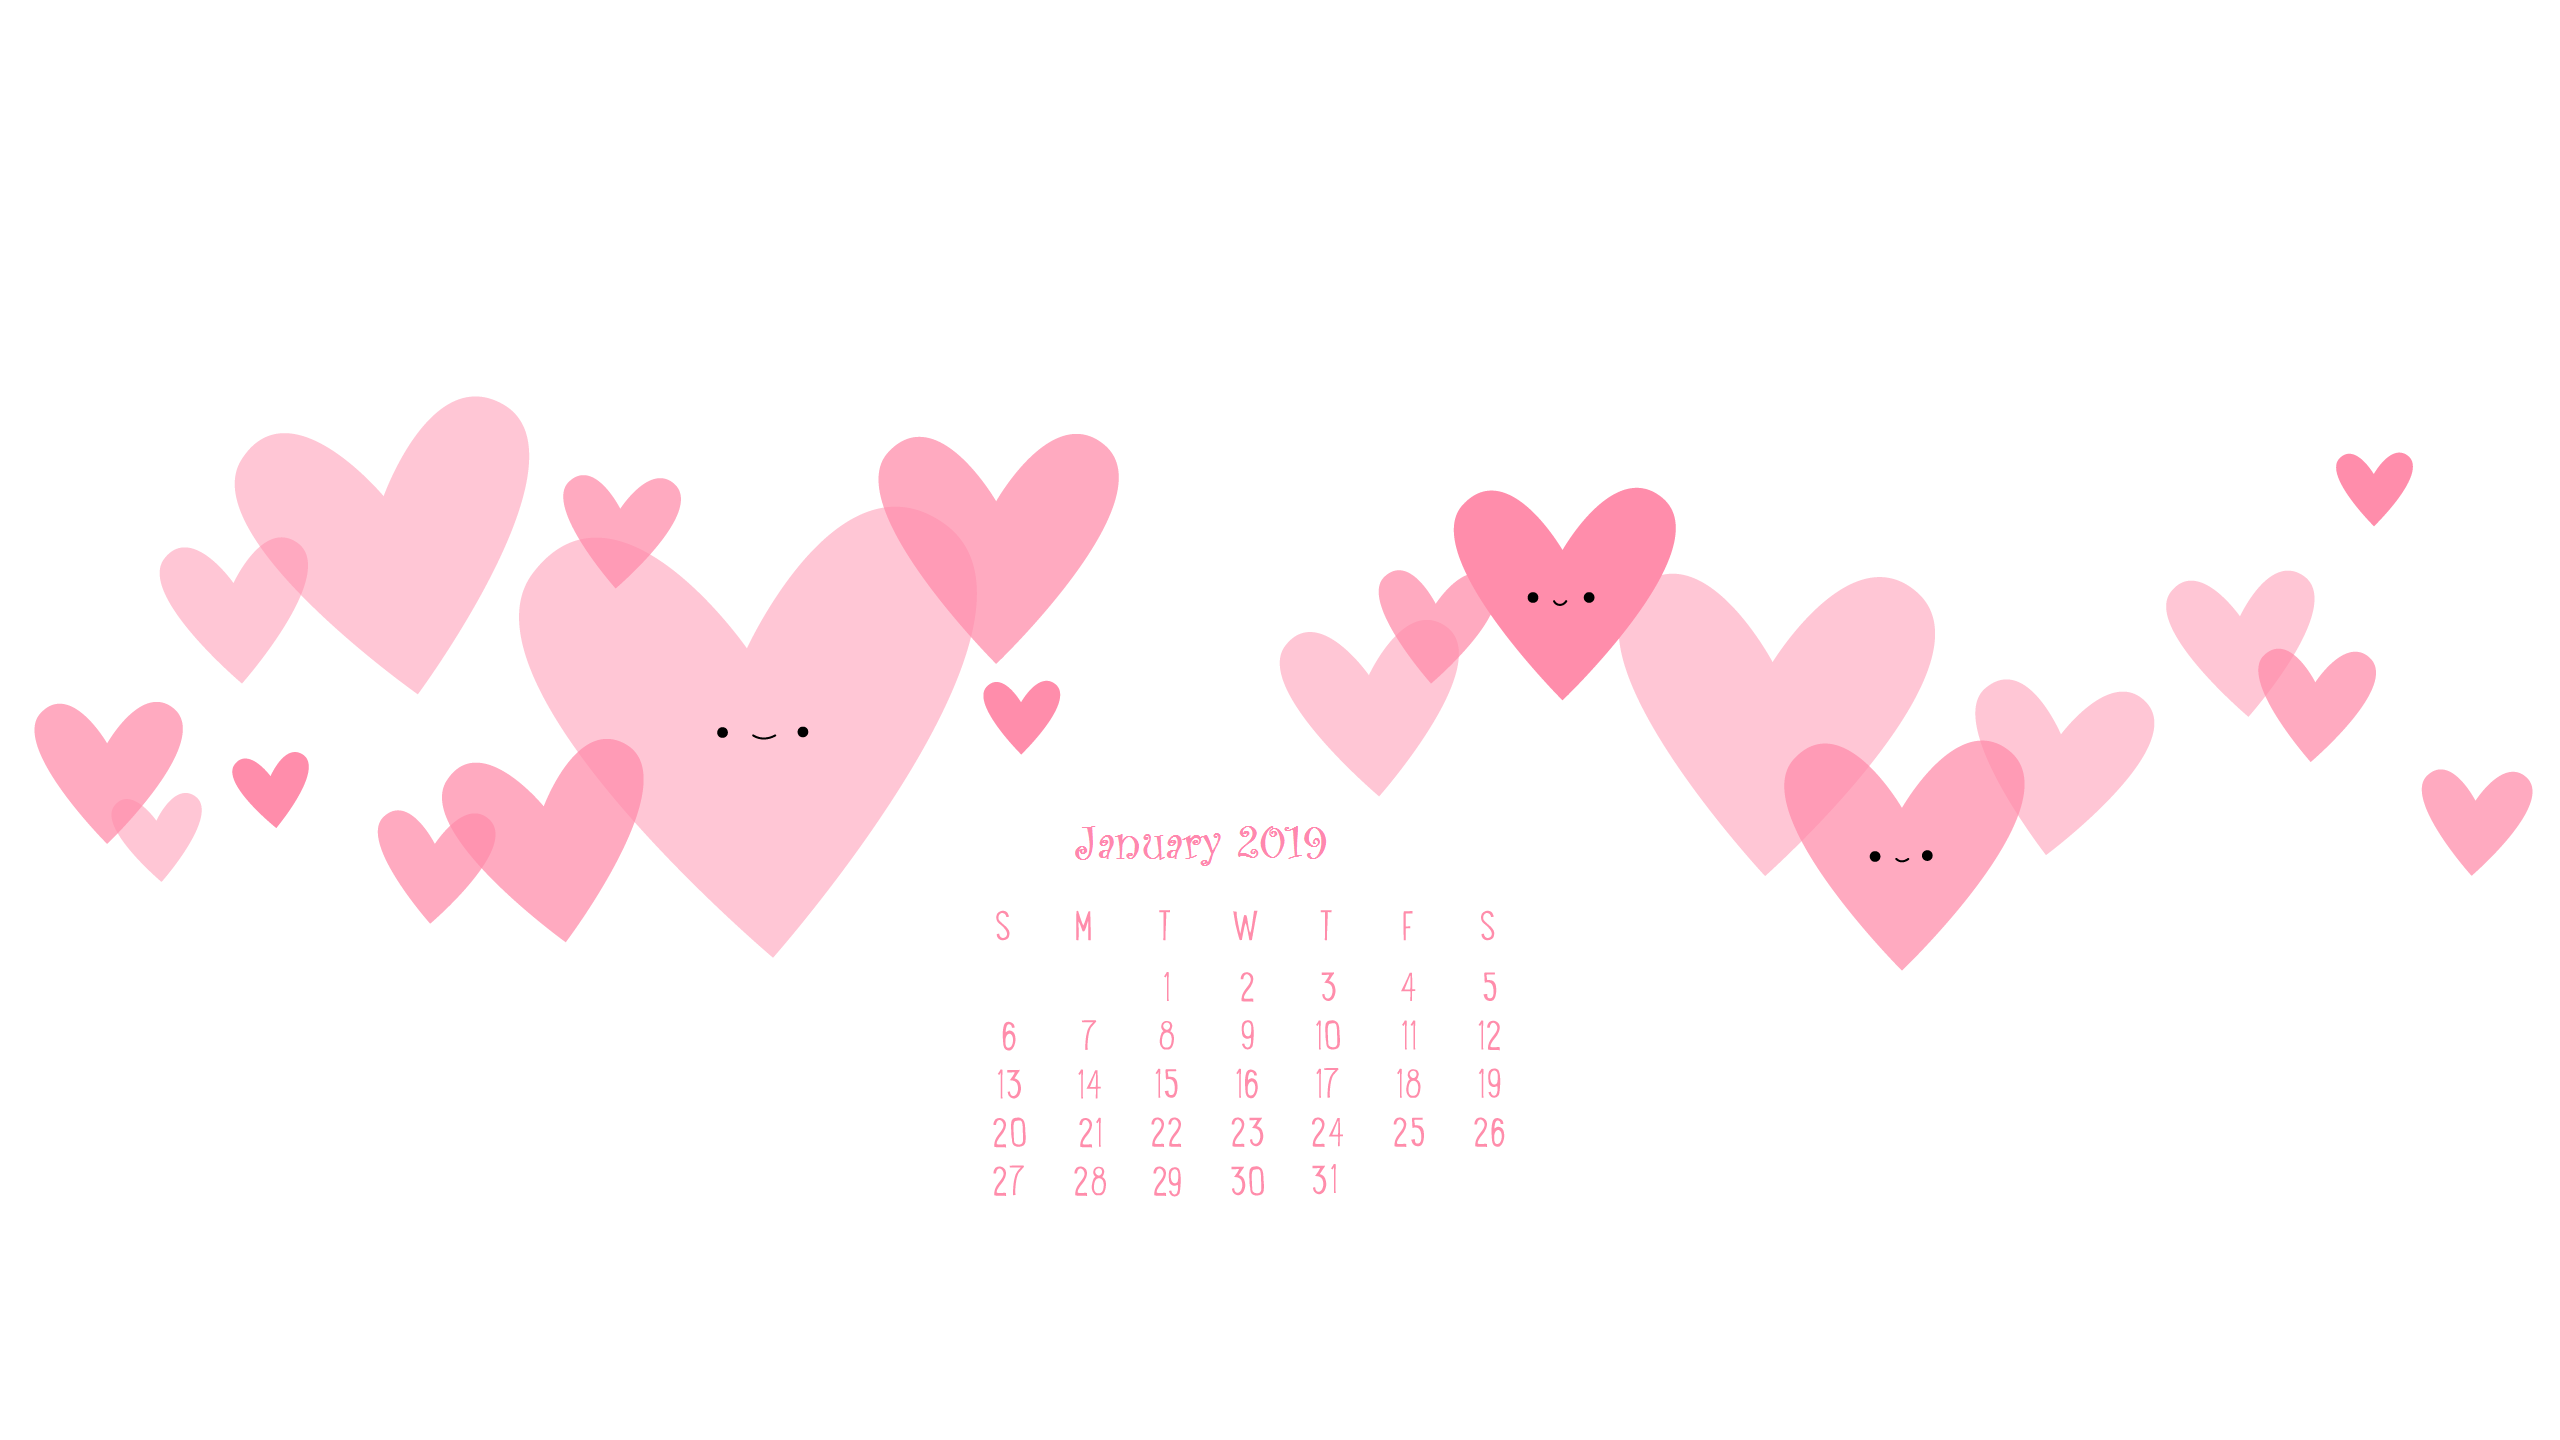 Heart Pink January 2019 Desktop Calendar